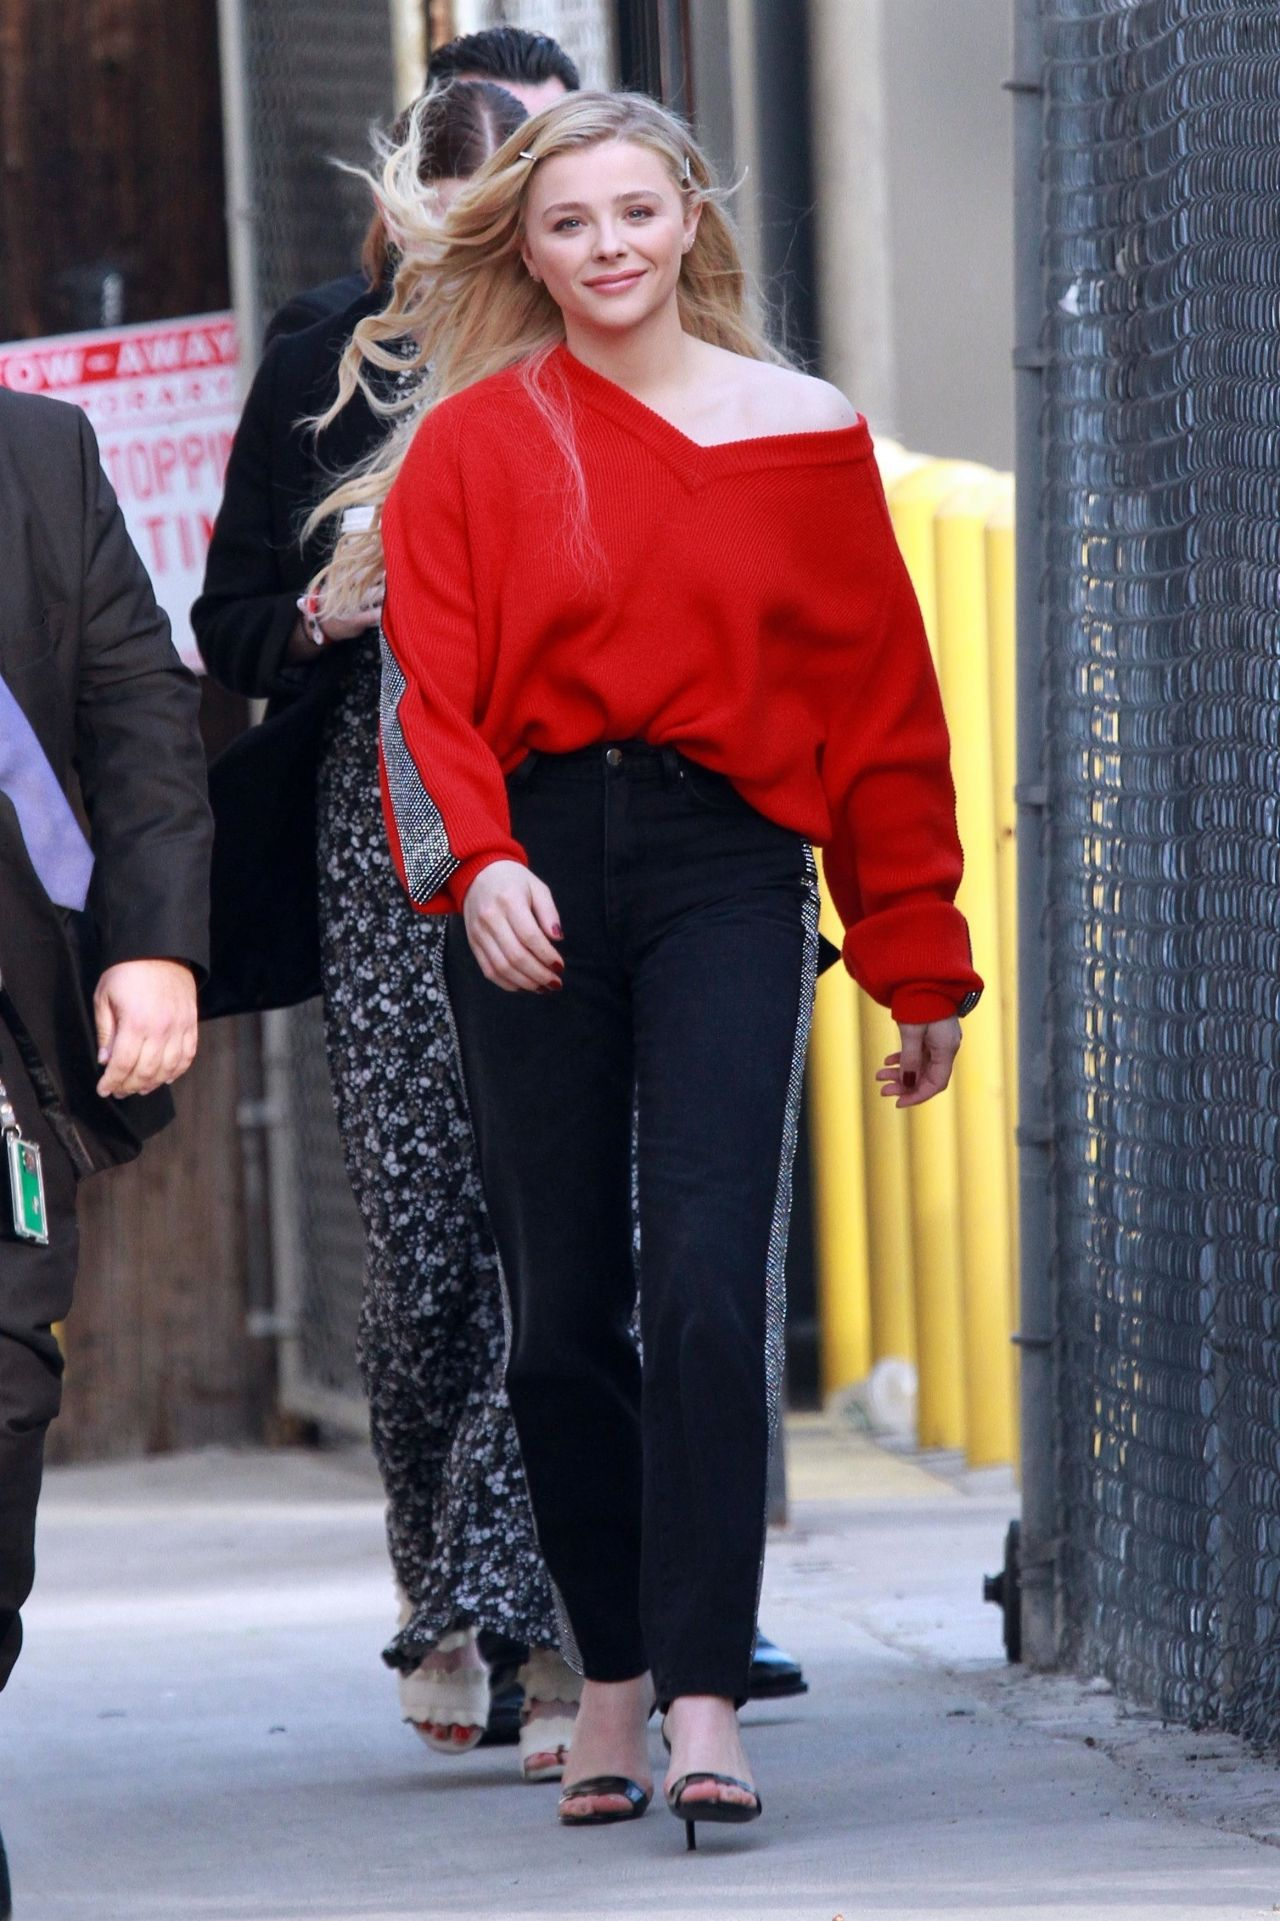 Chlo 235 Grace Moretz Outside Jimmy Kimmel Live In